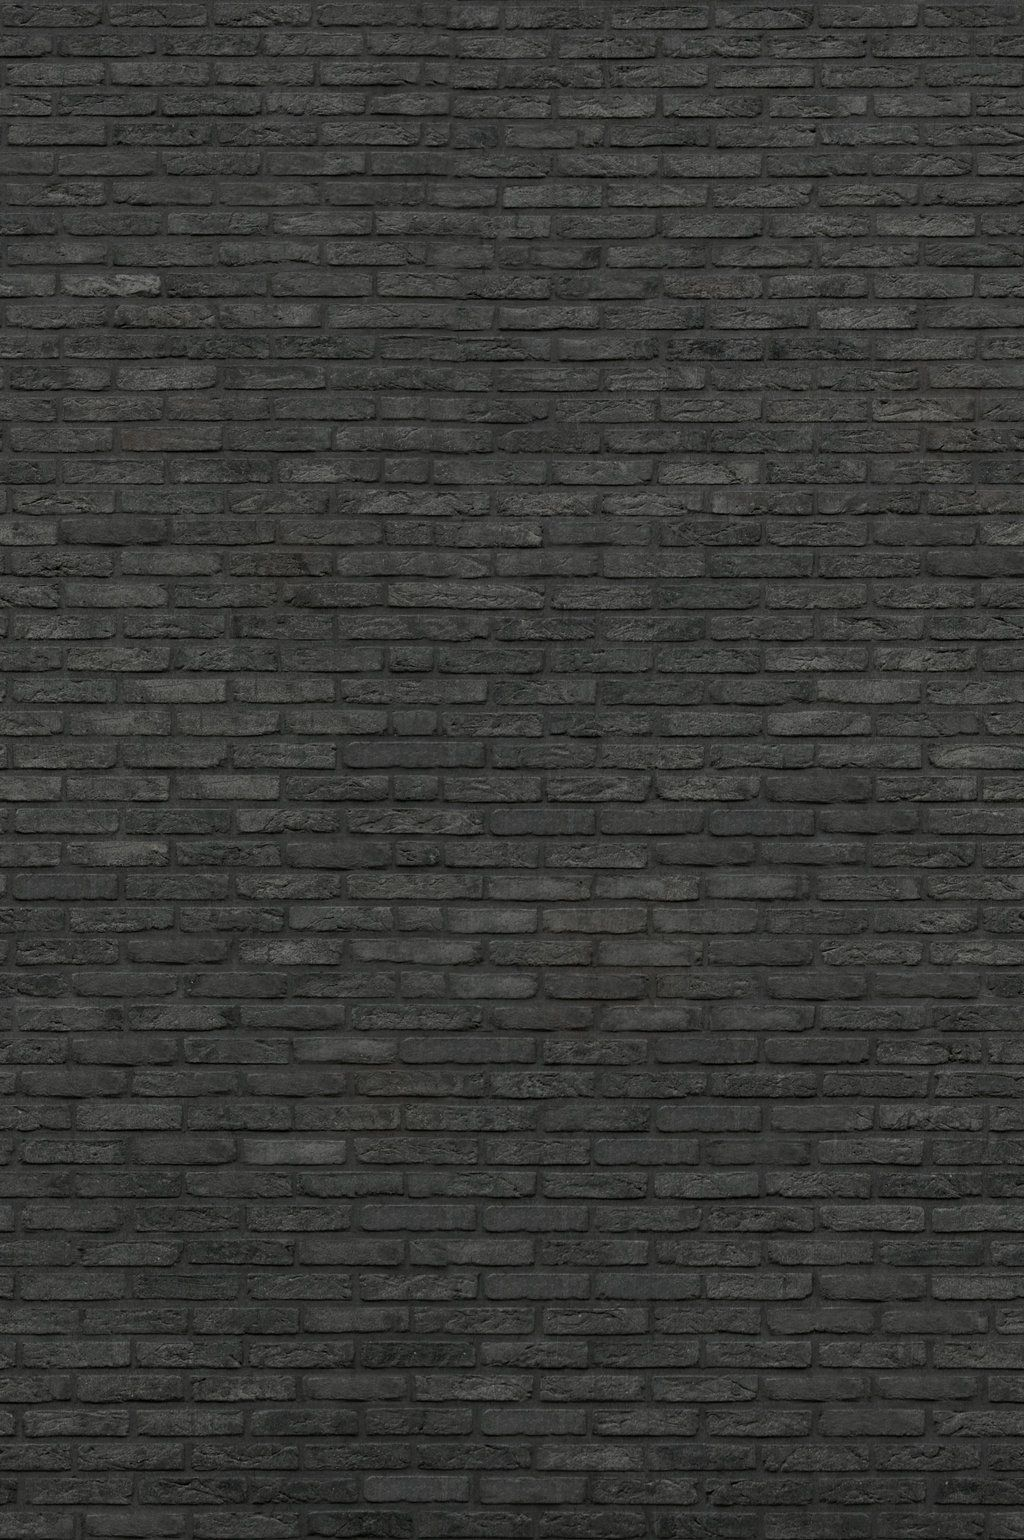 seamless black wall texture. Black/Dark Brick Wall Texture For Use In Architectural Viz Or Graphic Design What Every You Find It Suited For. Seamless Black A